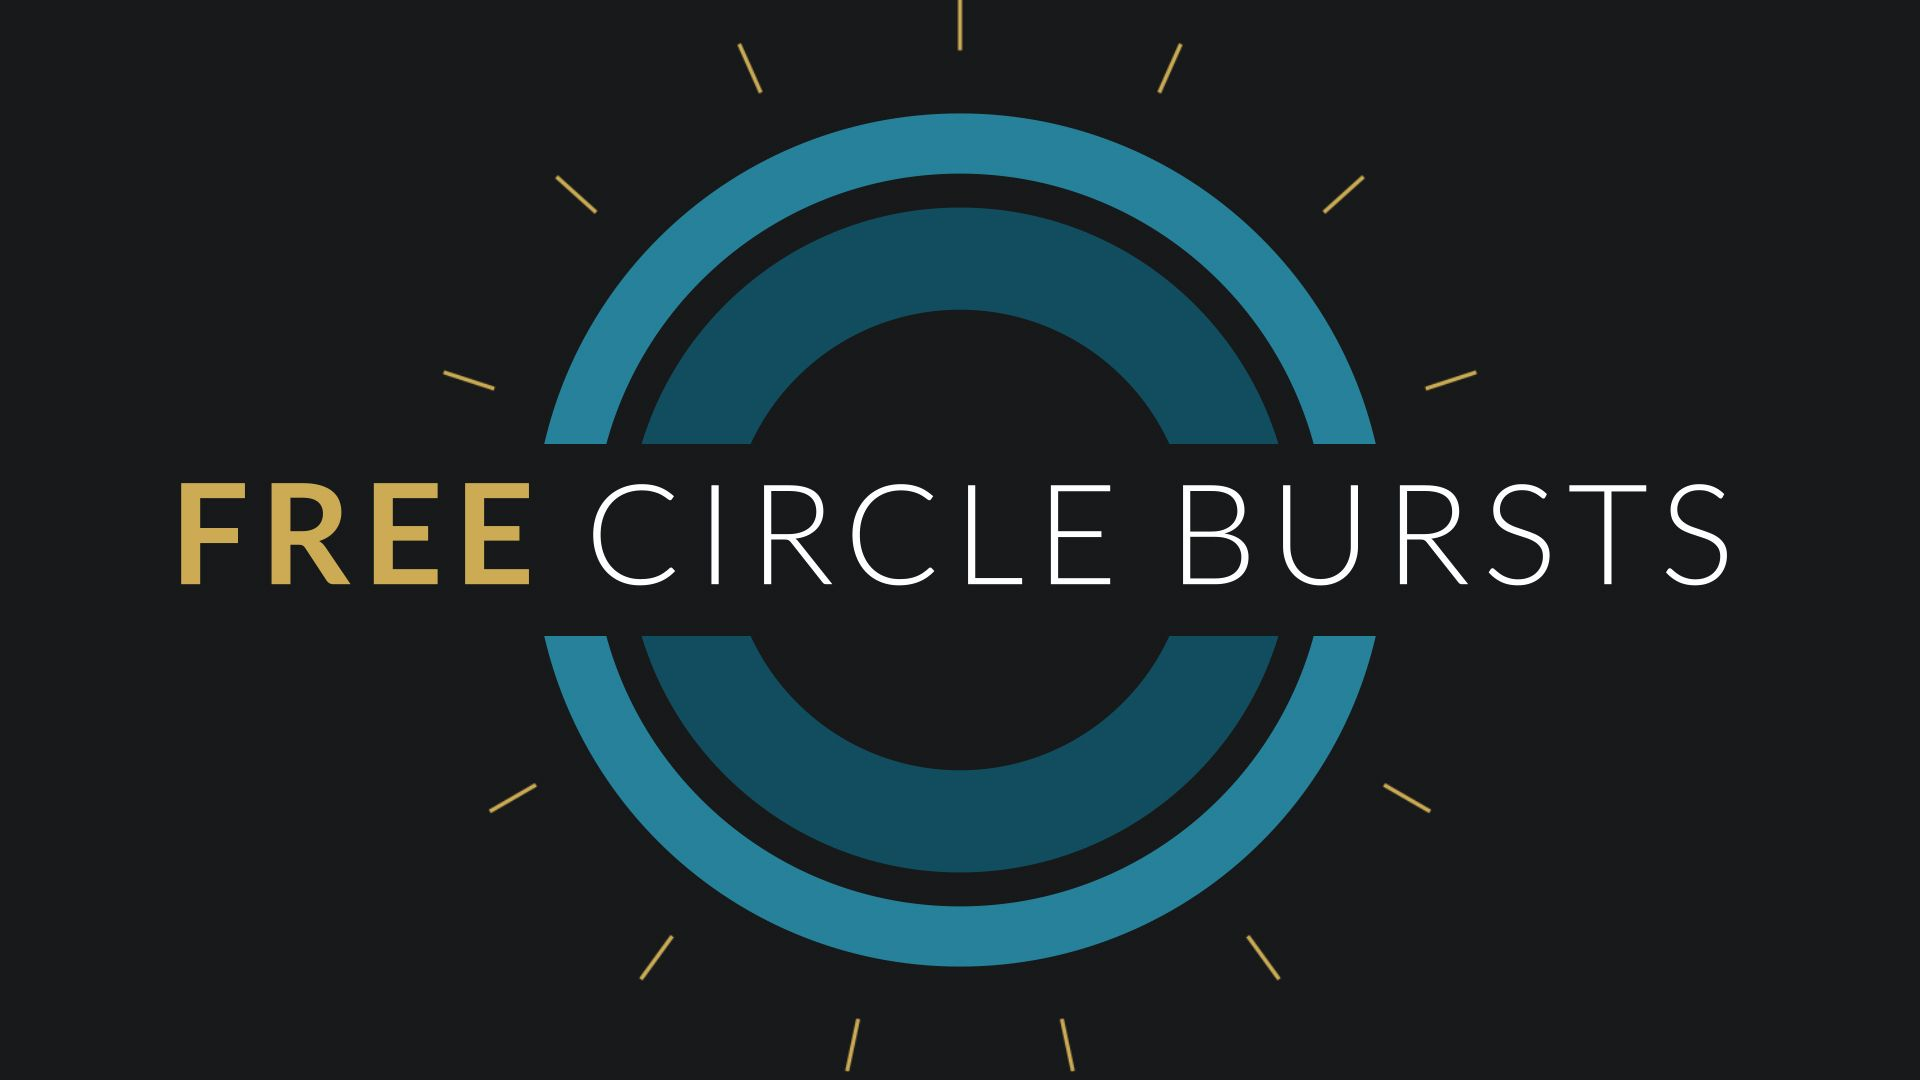 Free After Effects Template Circle Burst Assets With Images